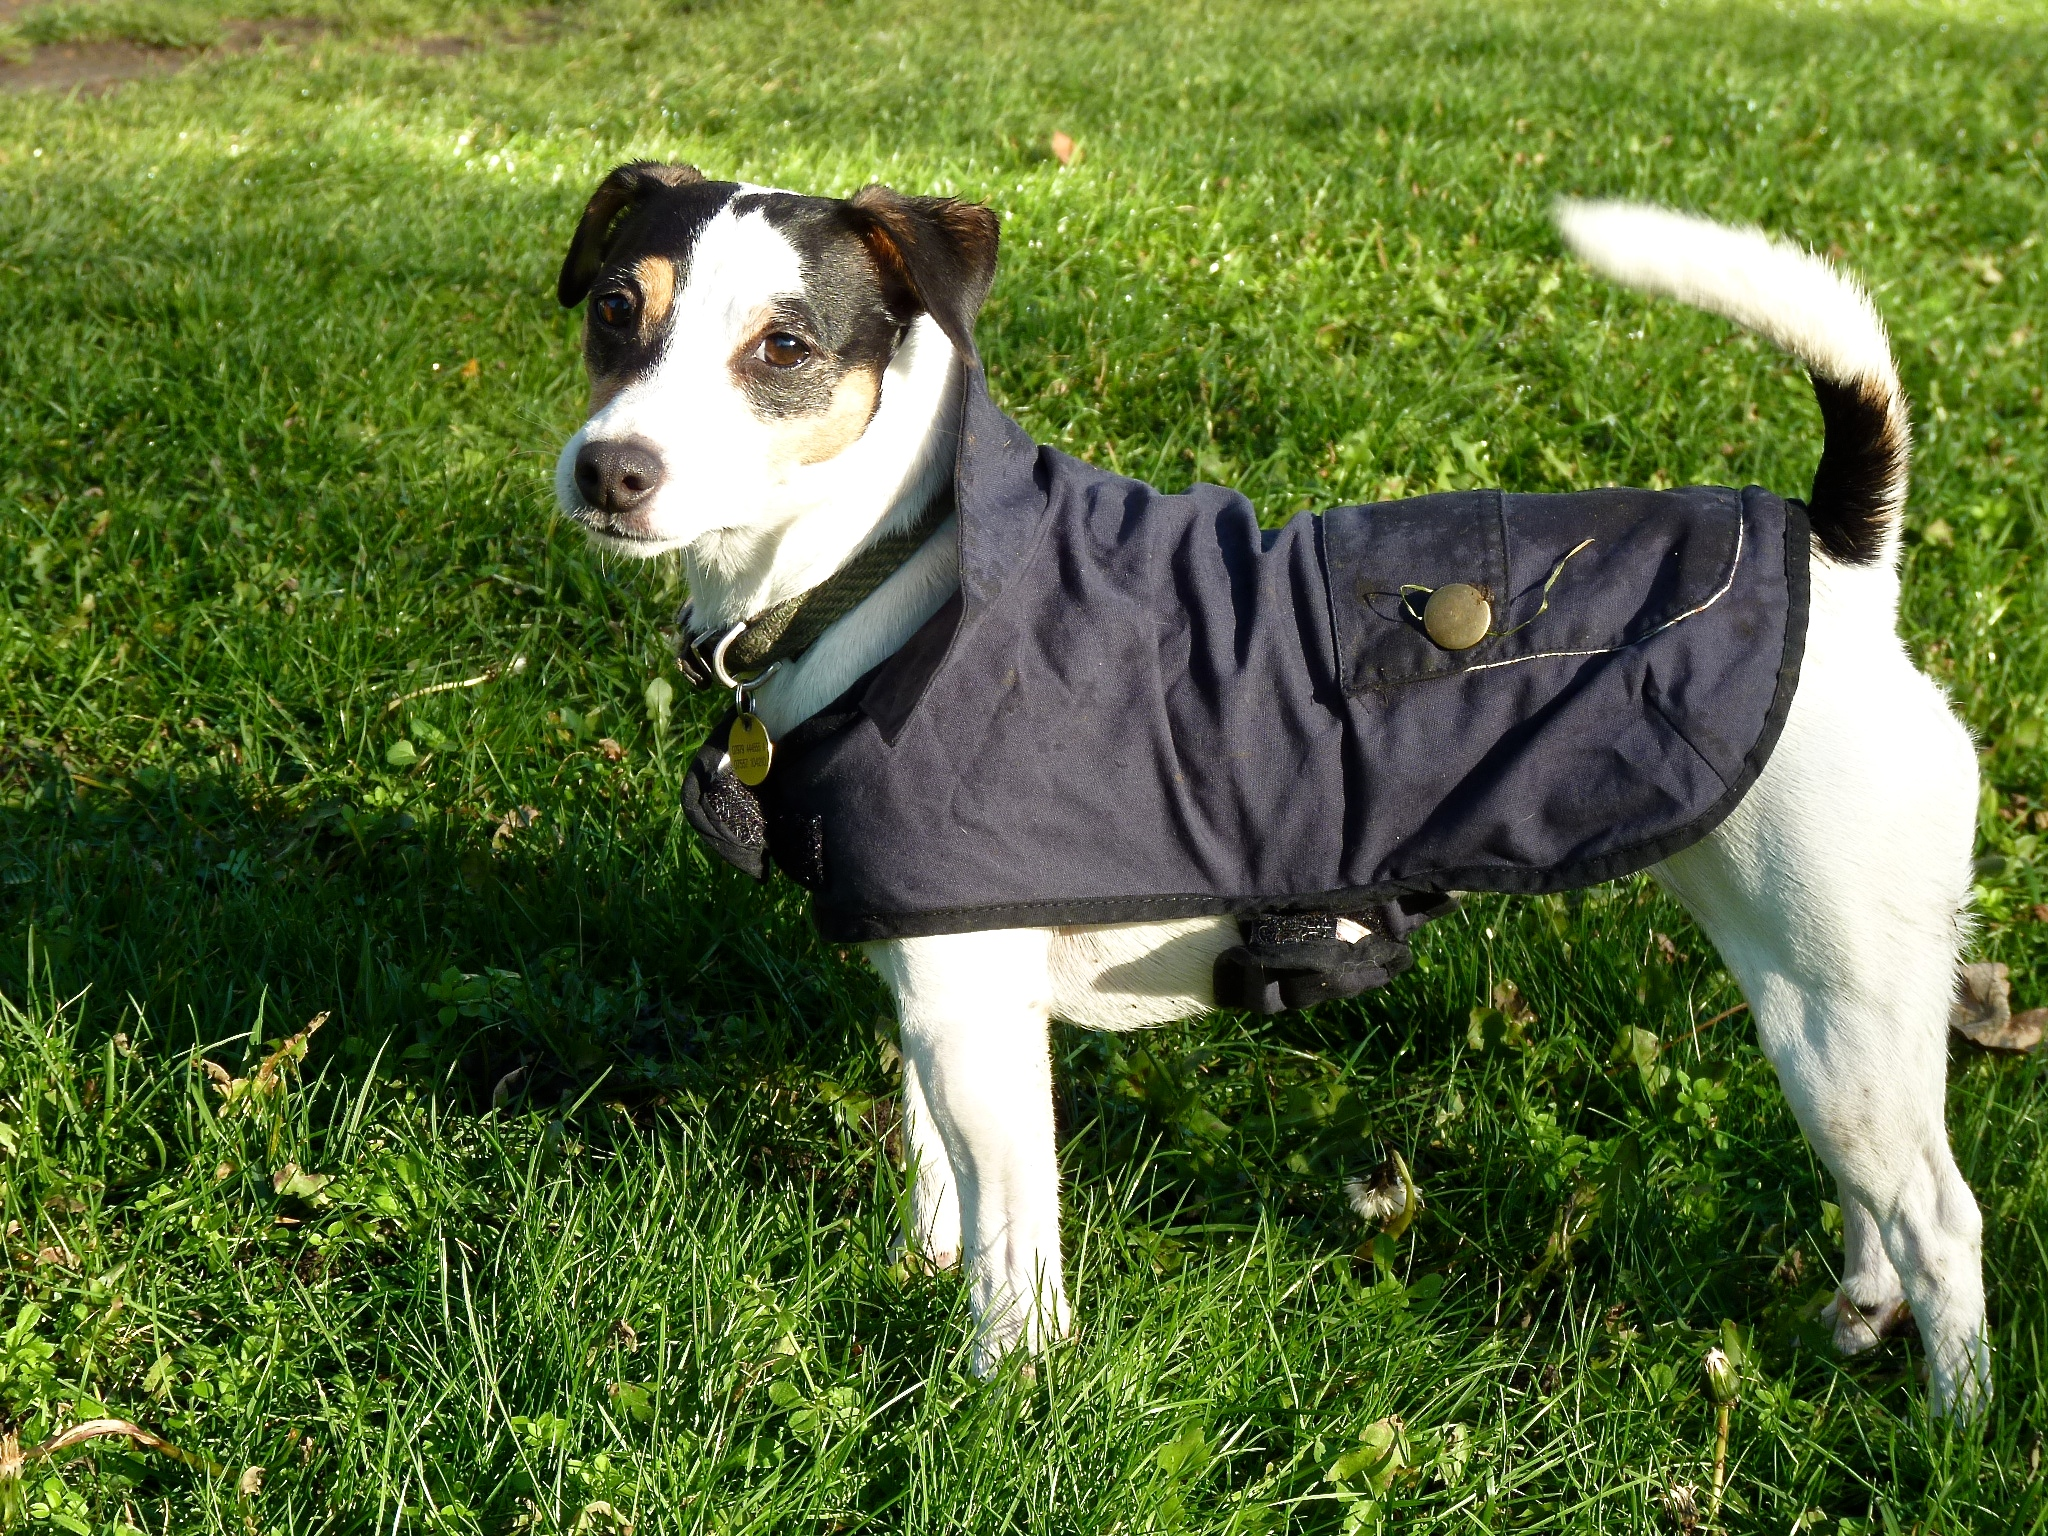 Oh no, they put me in a coat again!